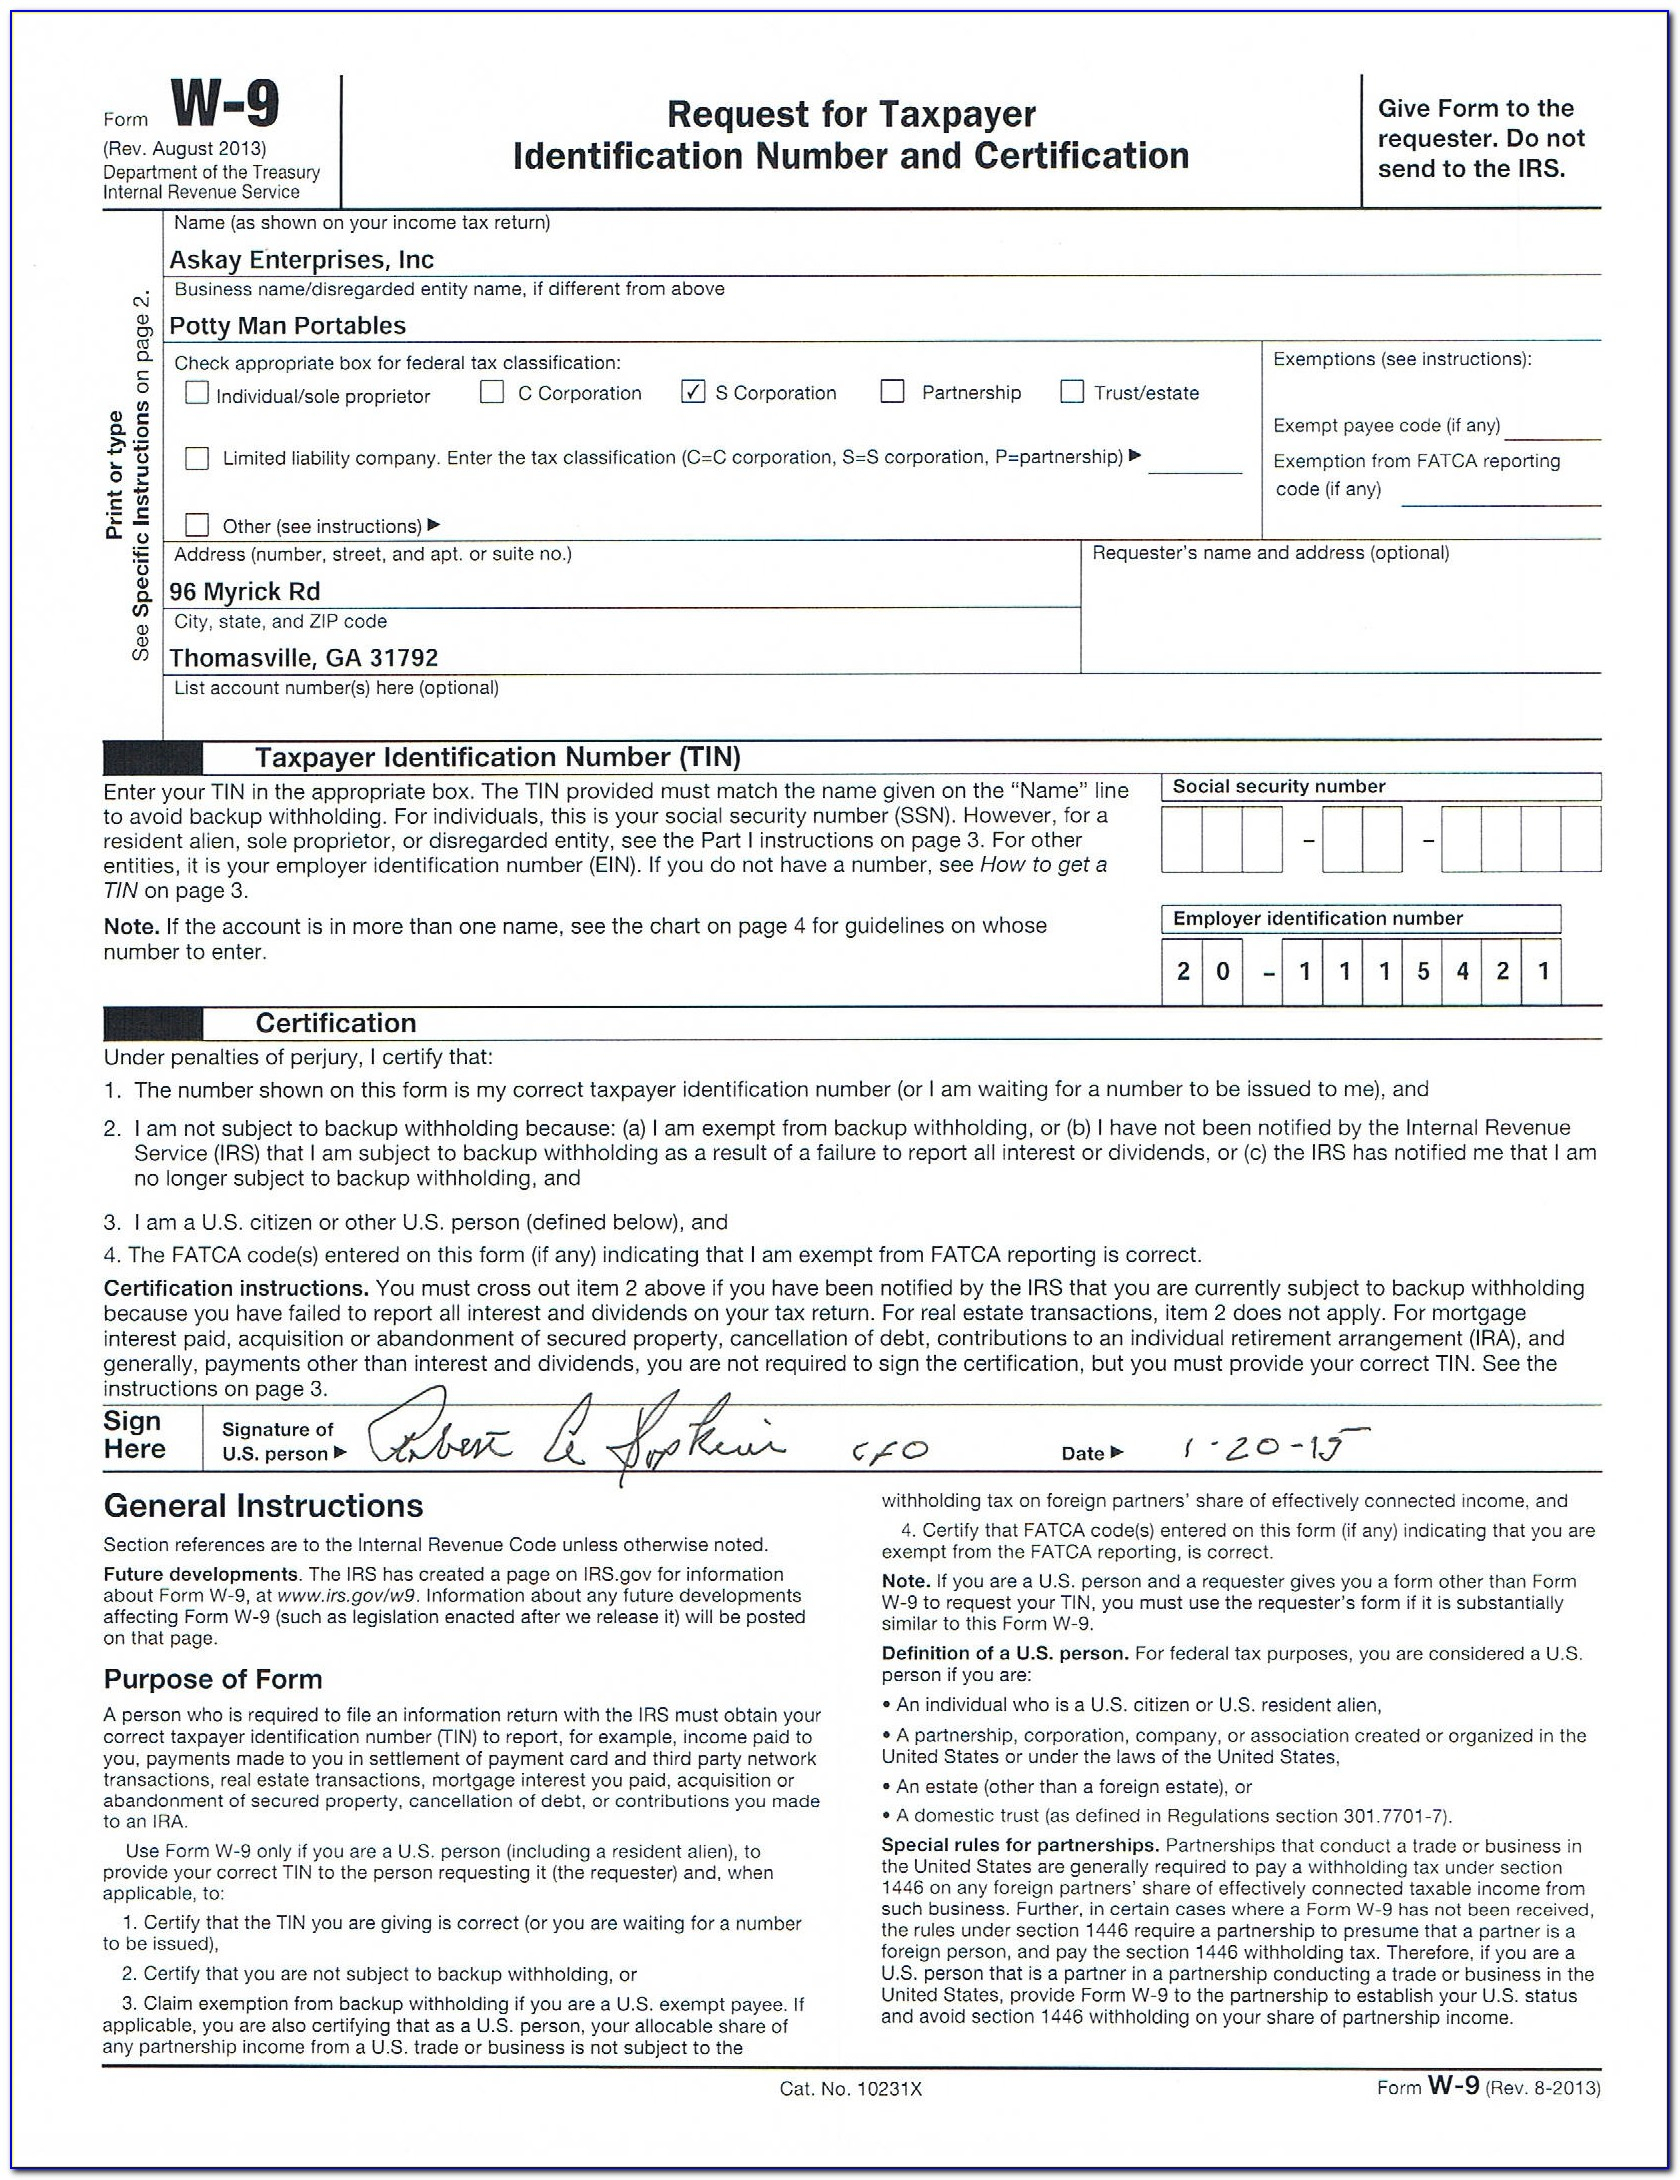 W9 Free Printable Form 2016 | Vincegray2014 throughout W 9 Printable Form